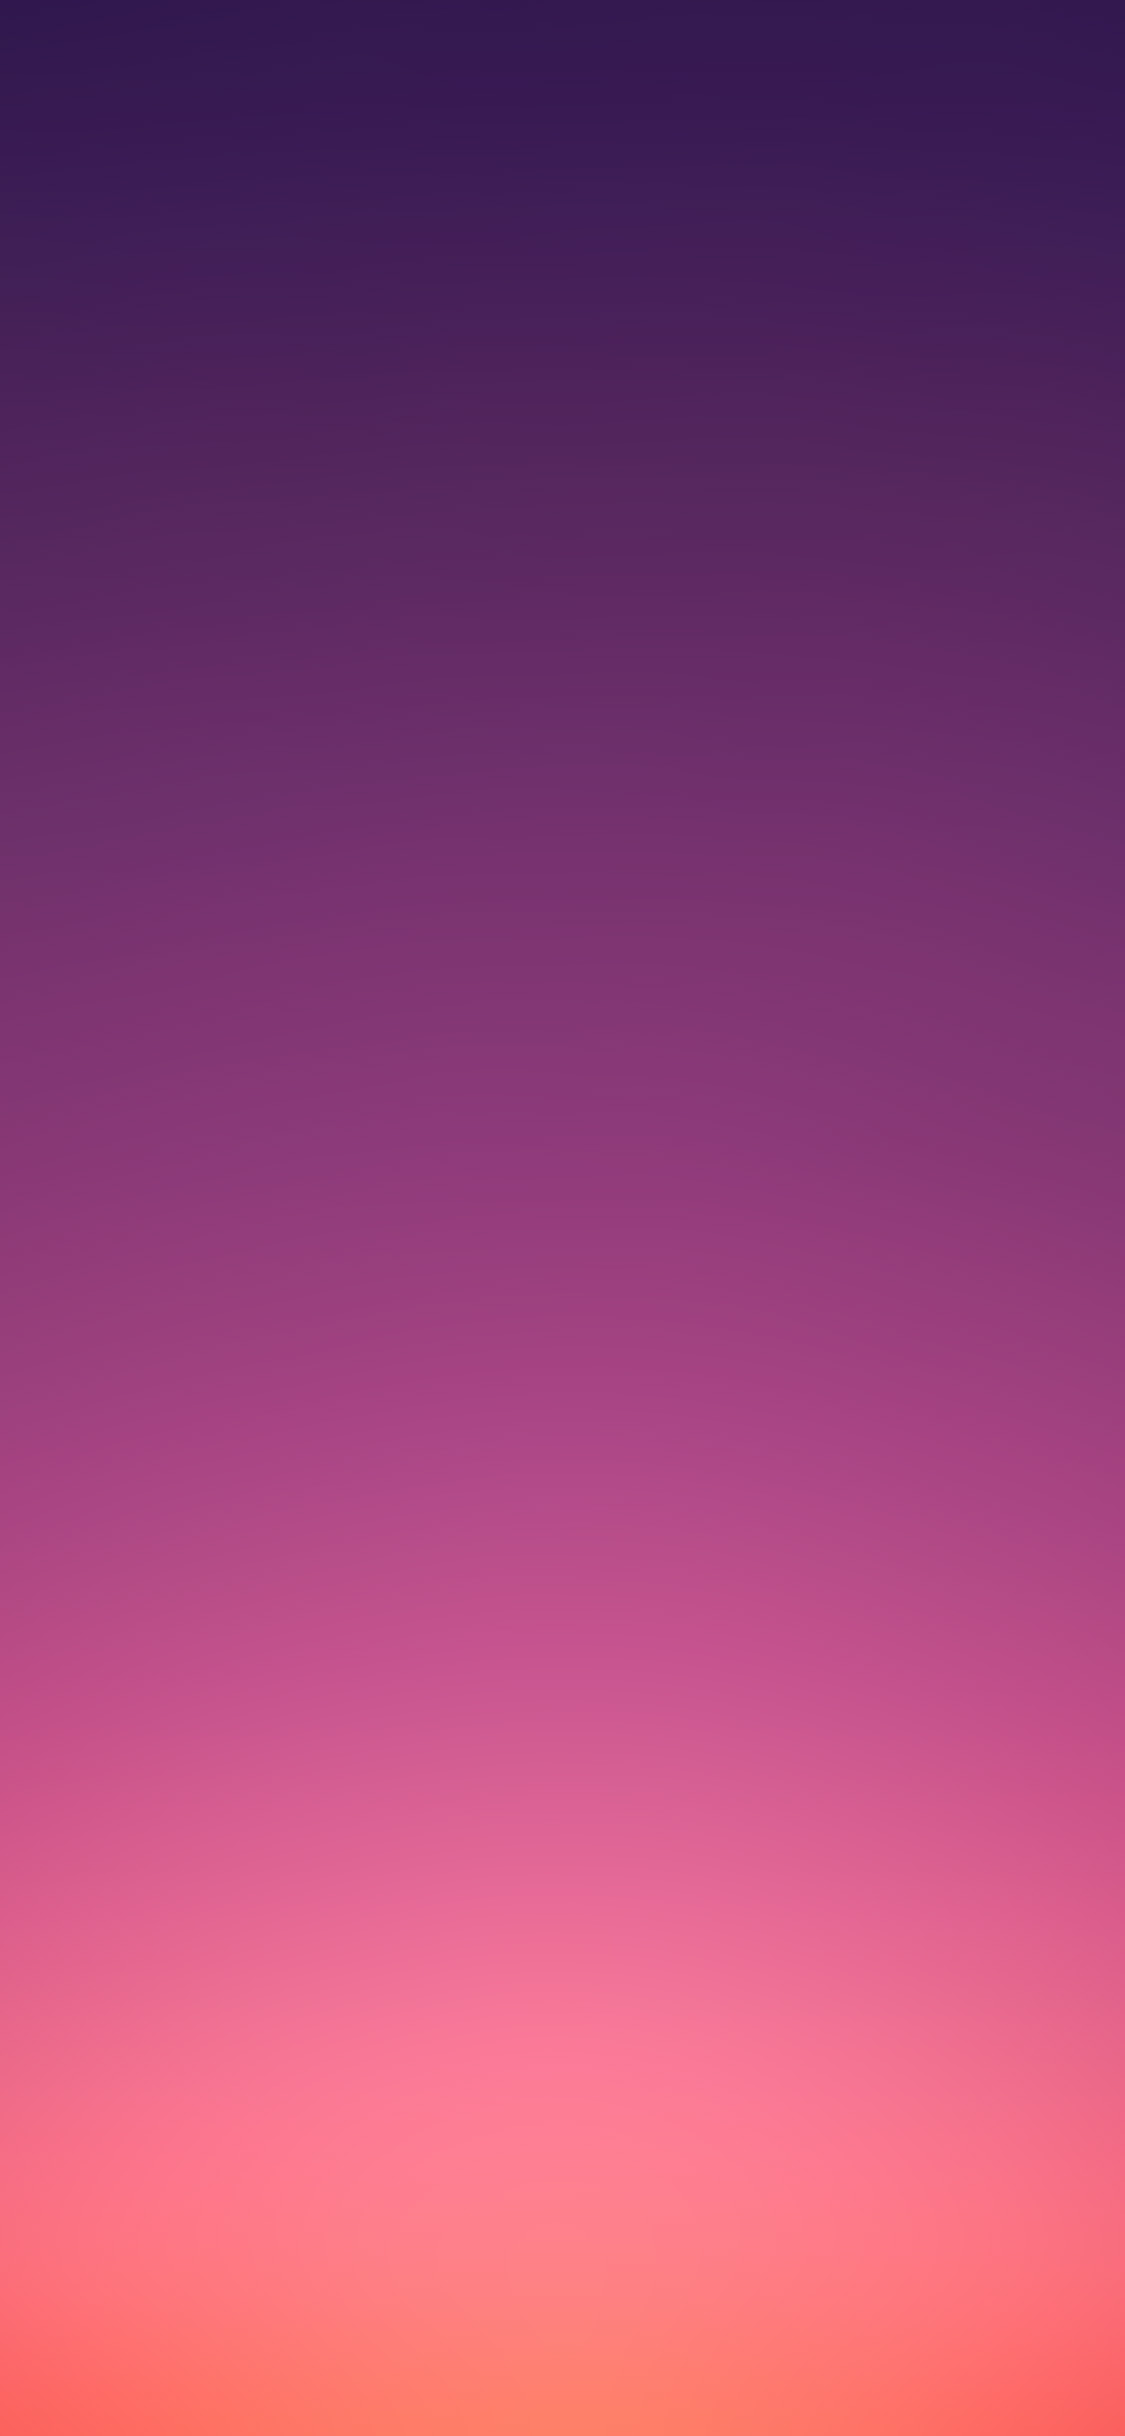 iPhoneXpapers.com-Apple-iPhone-wallpaper-sl88-dawn-morning-pink-purple-blur-gradation